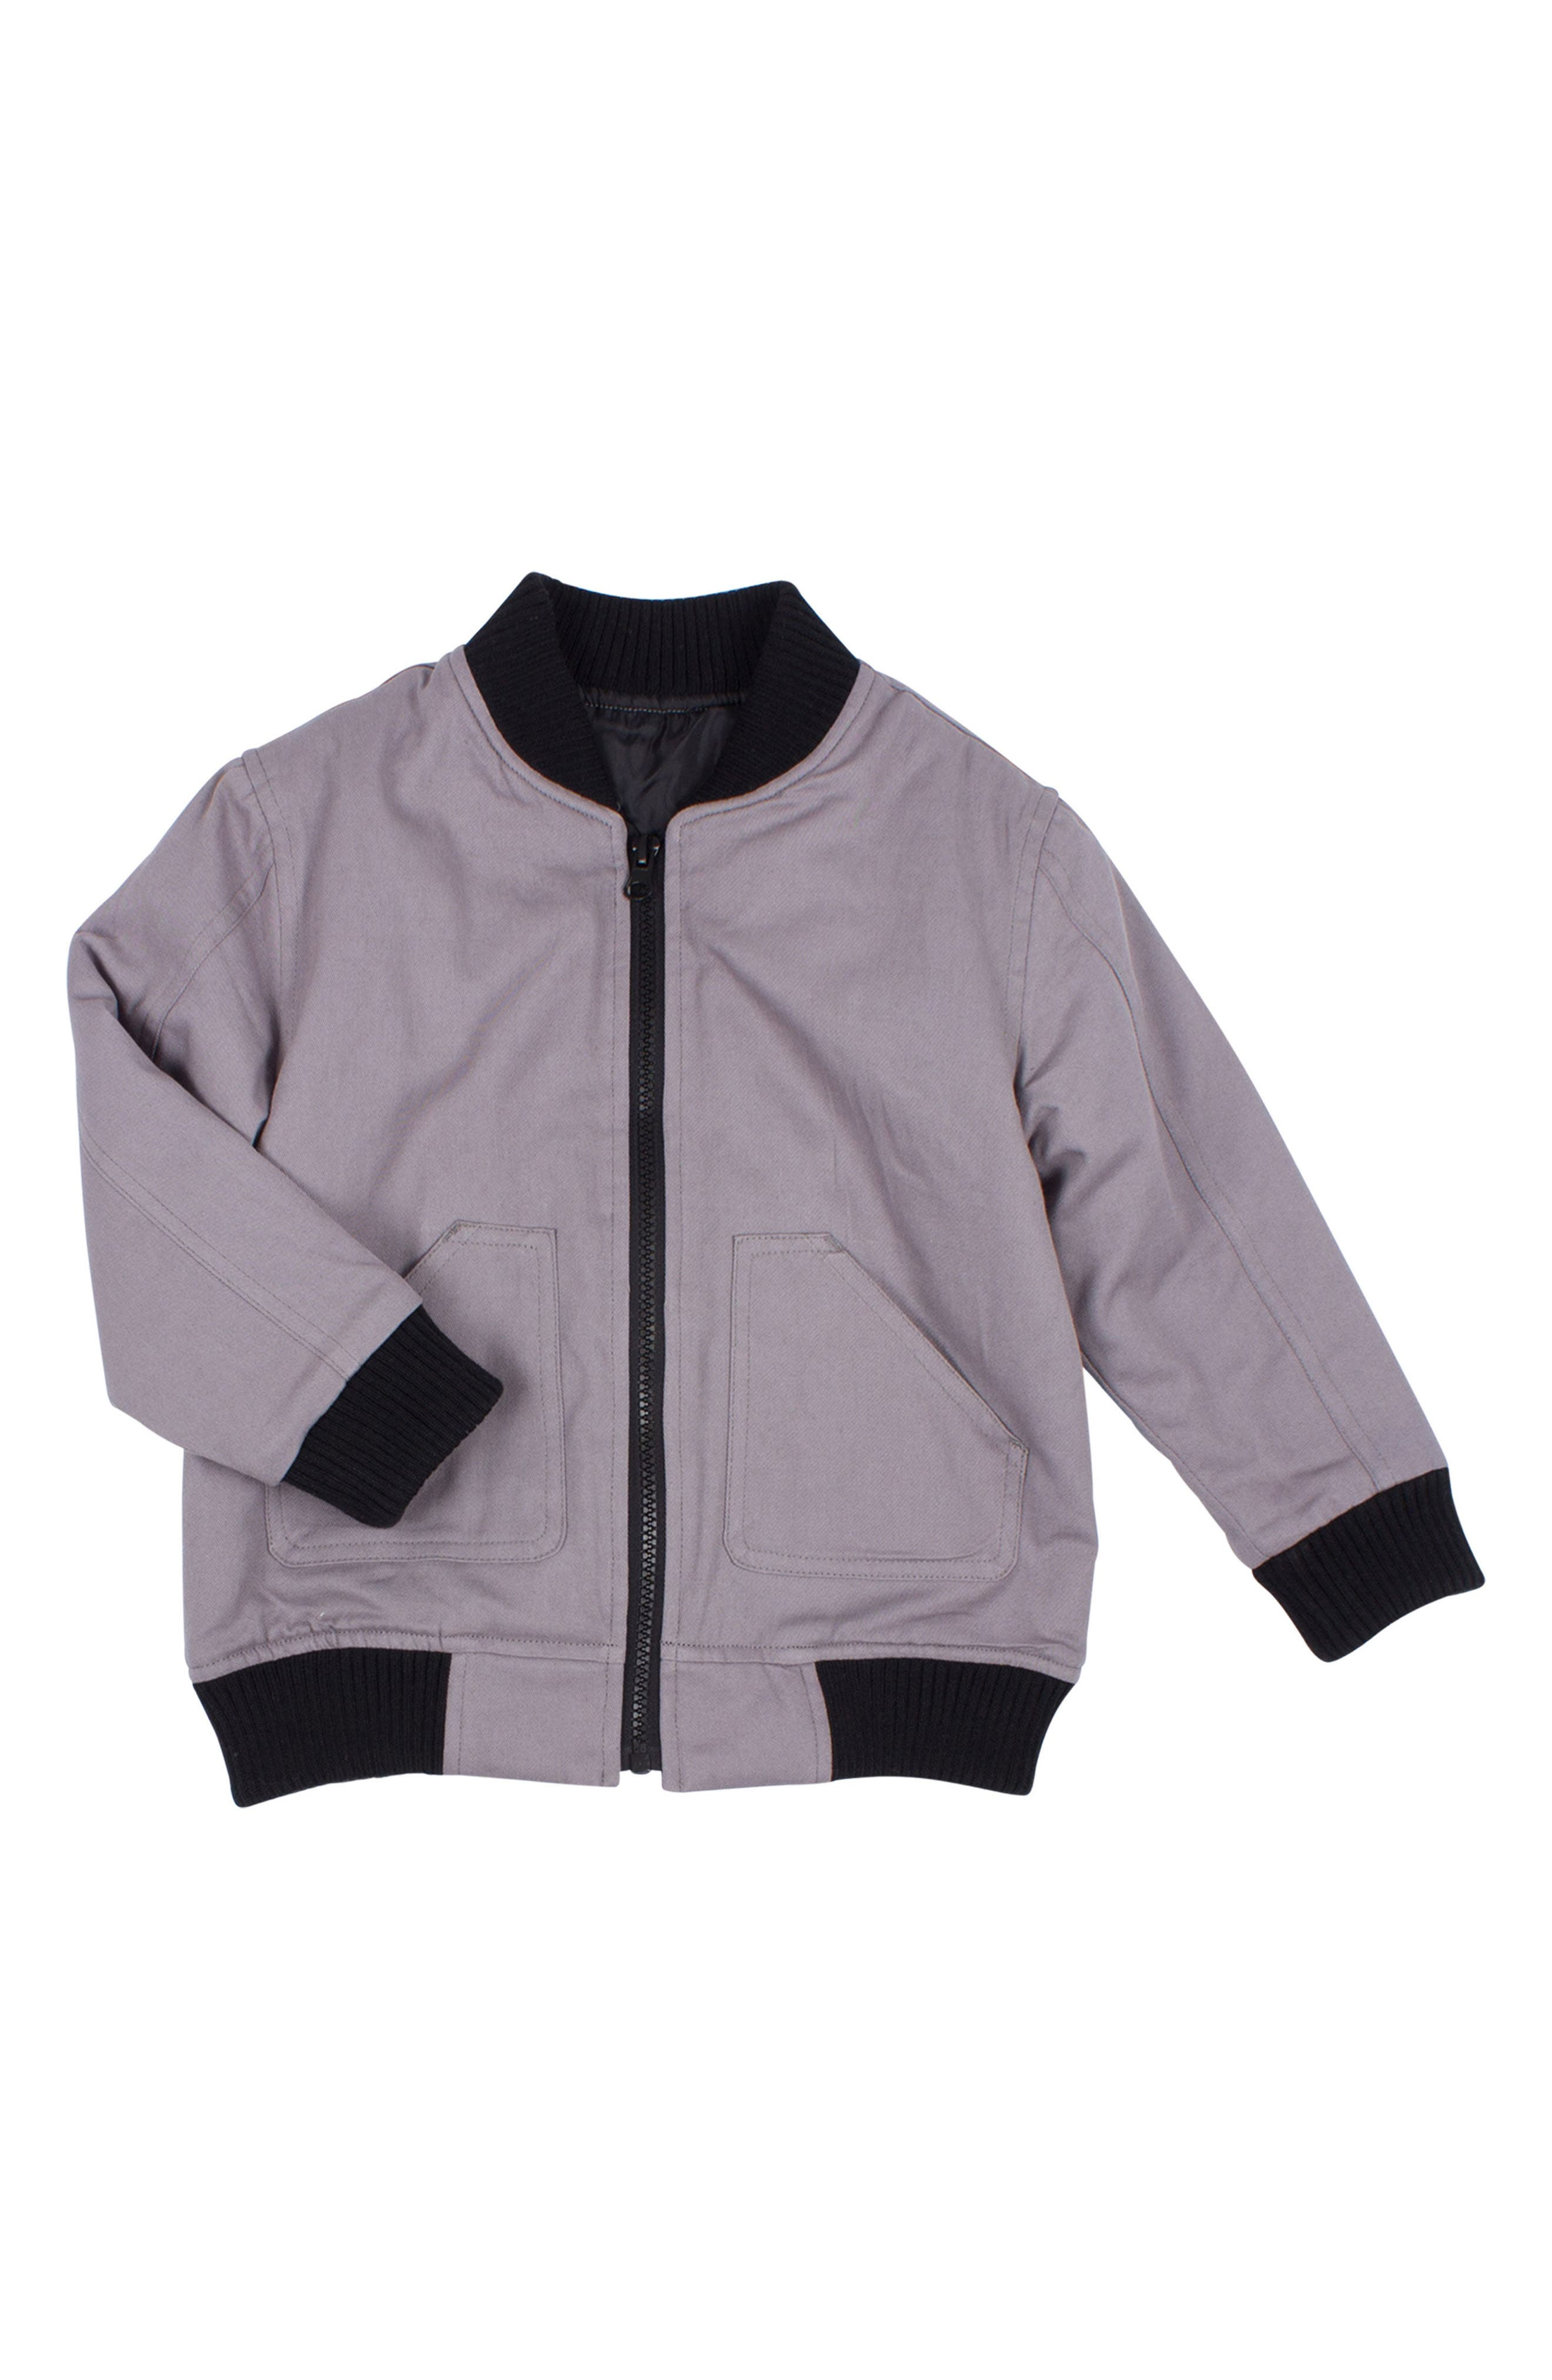 Check You Later Bomber Jacket,                         Main,                         color, 035